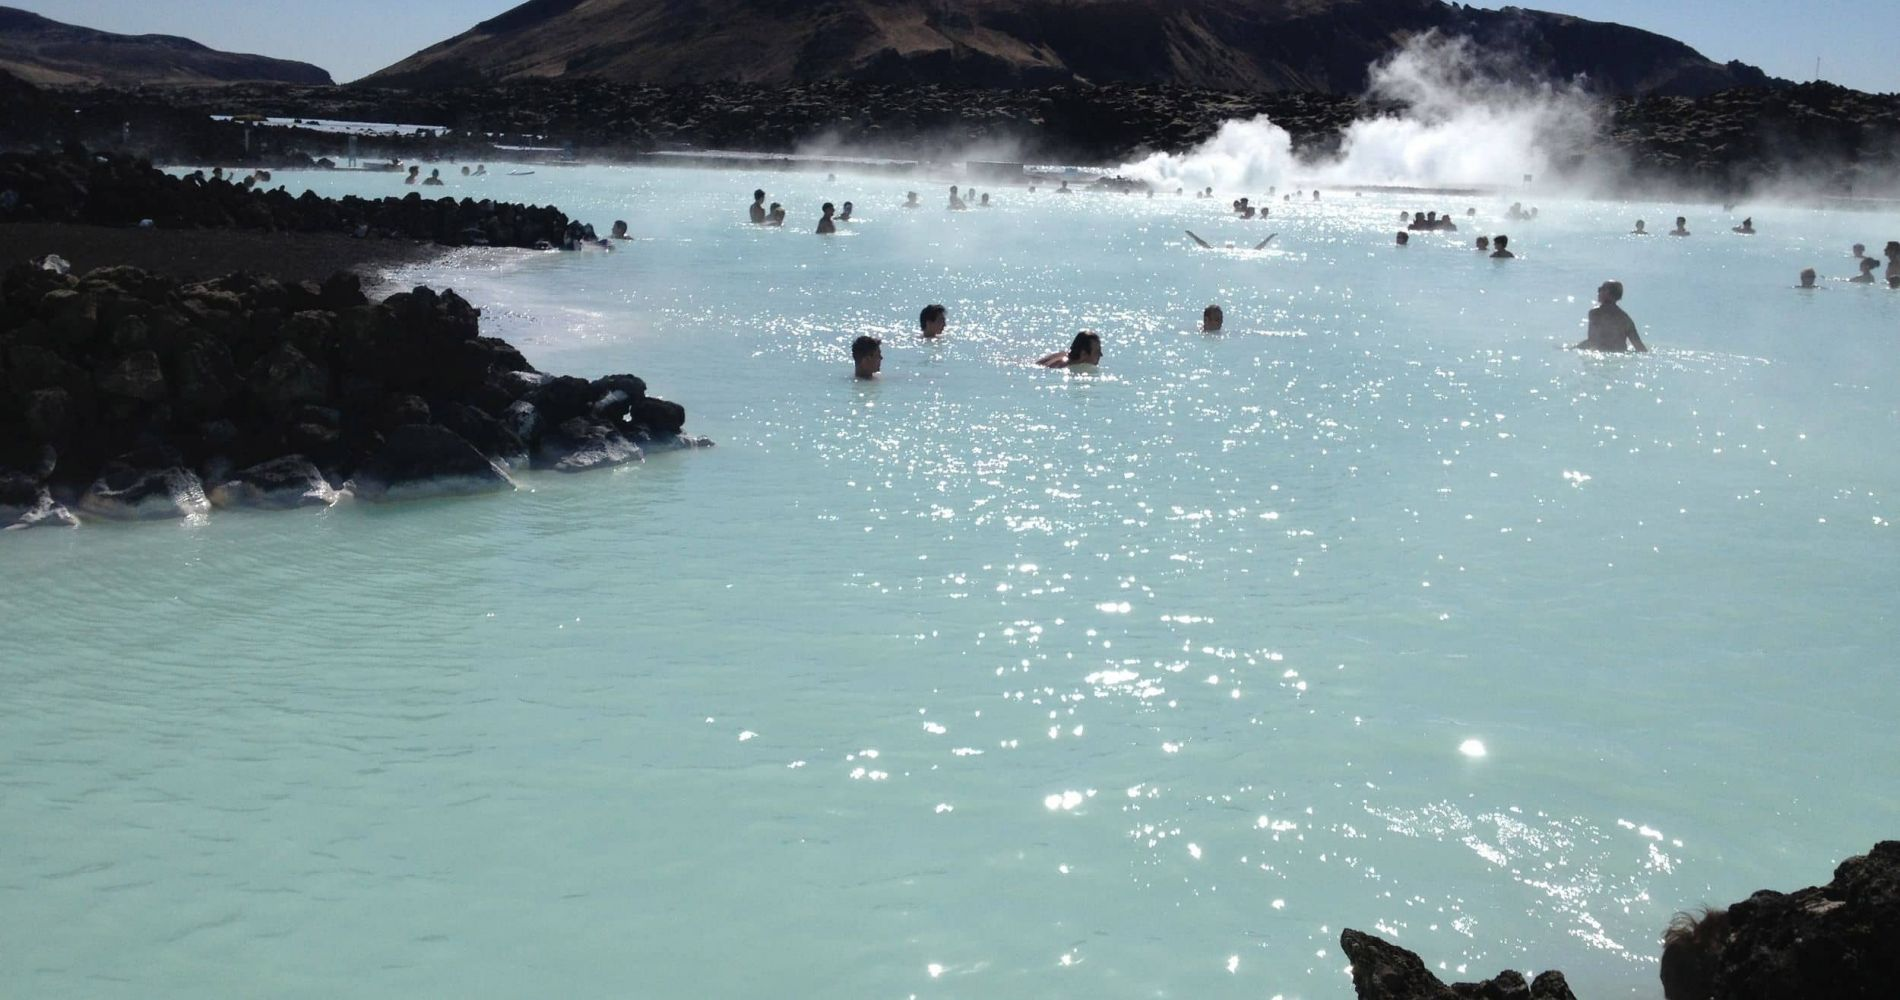 Relaxing Day at Geothermal Spa in Iceland